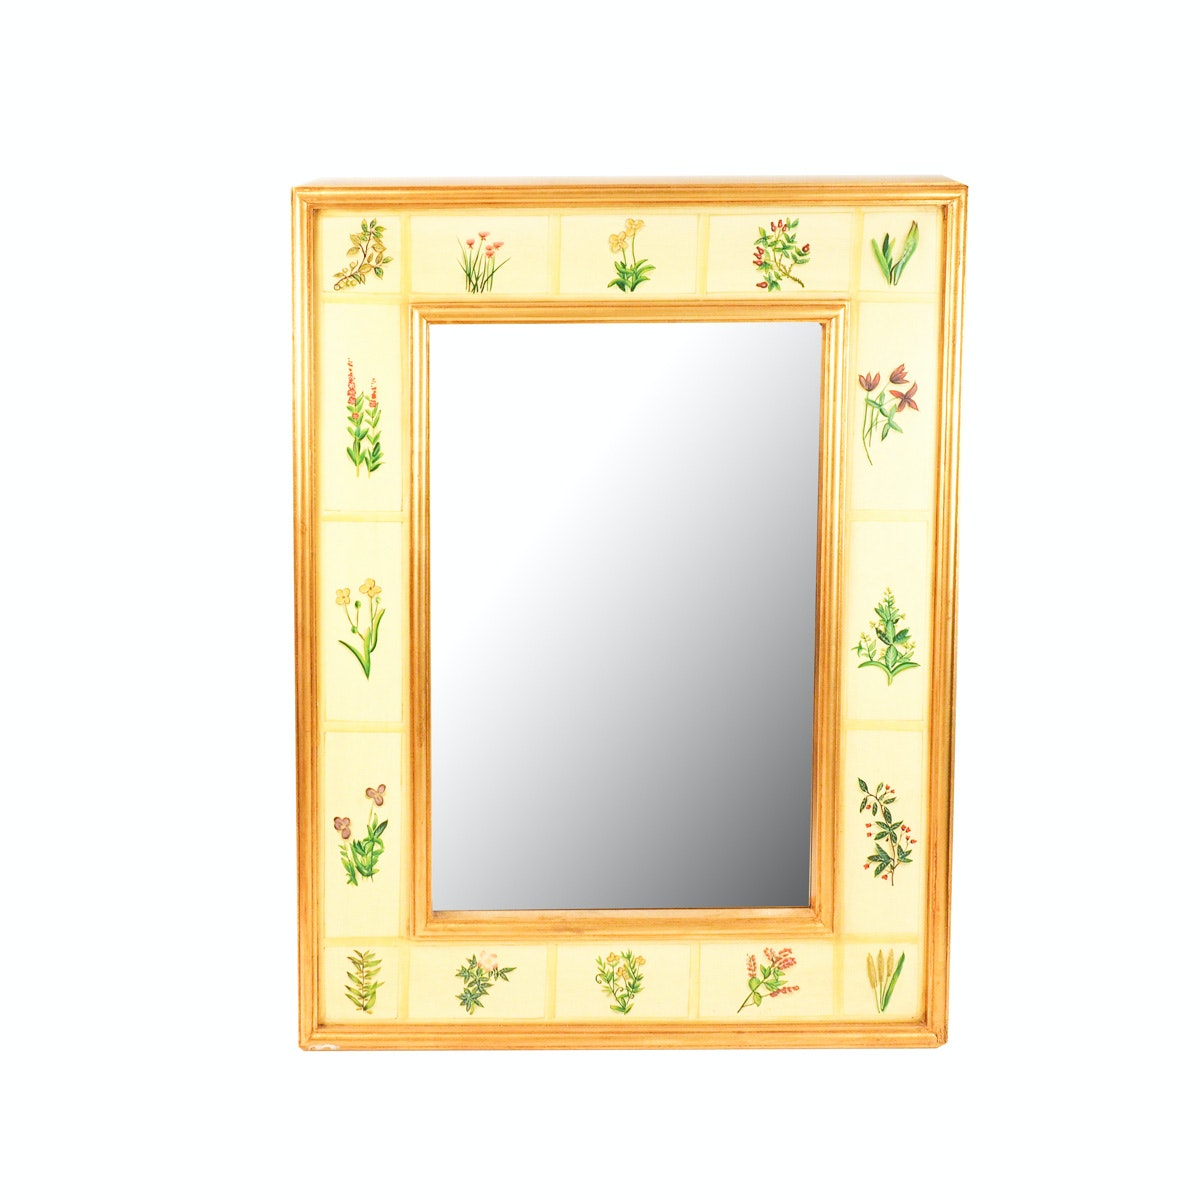 Hand Painted  Botanical Themed Wall Mirror